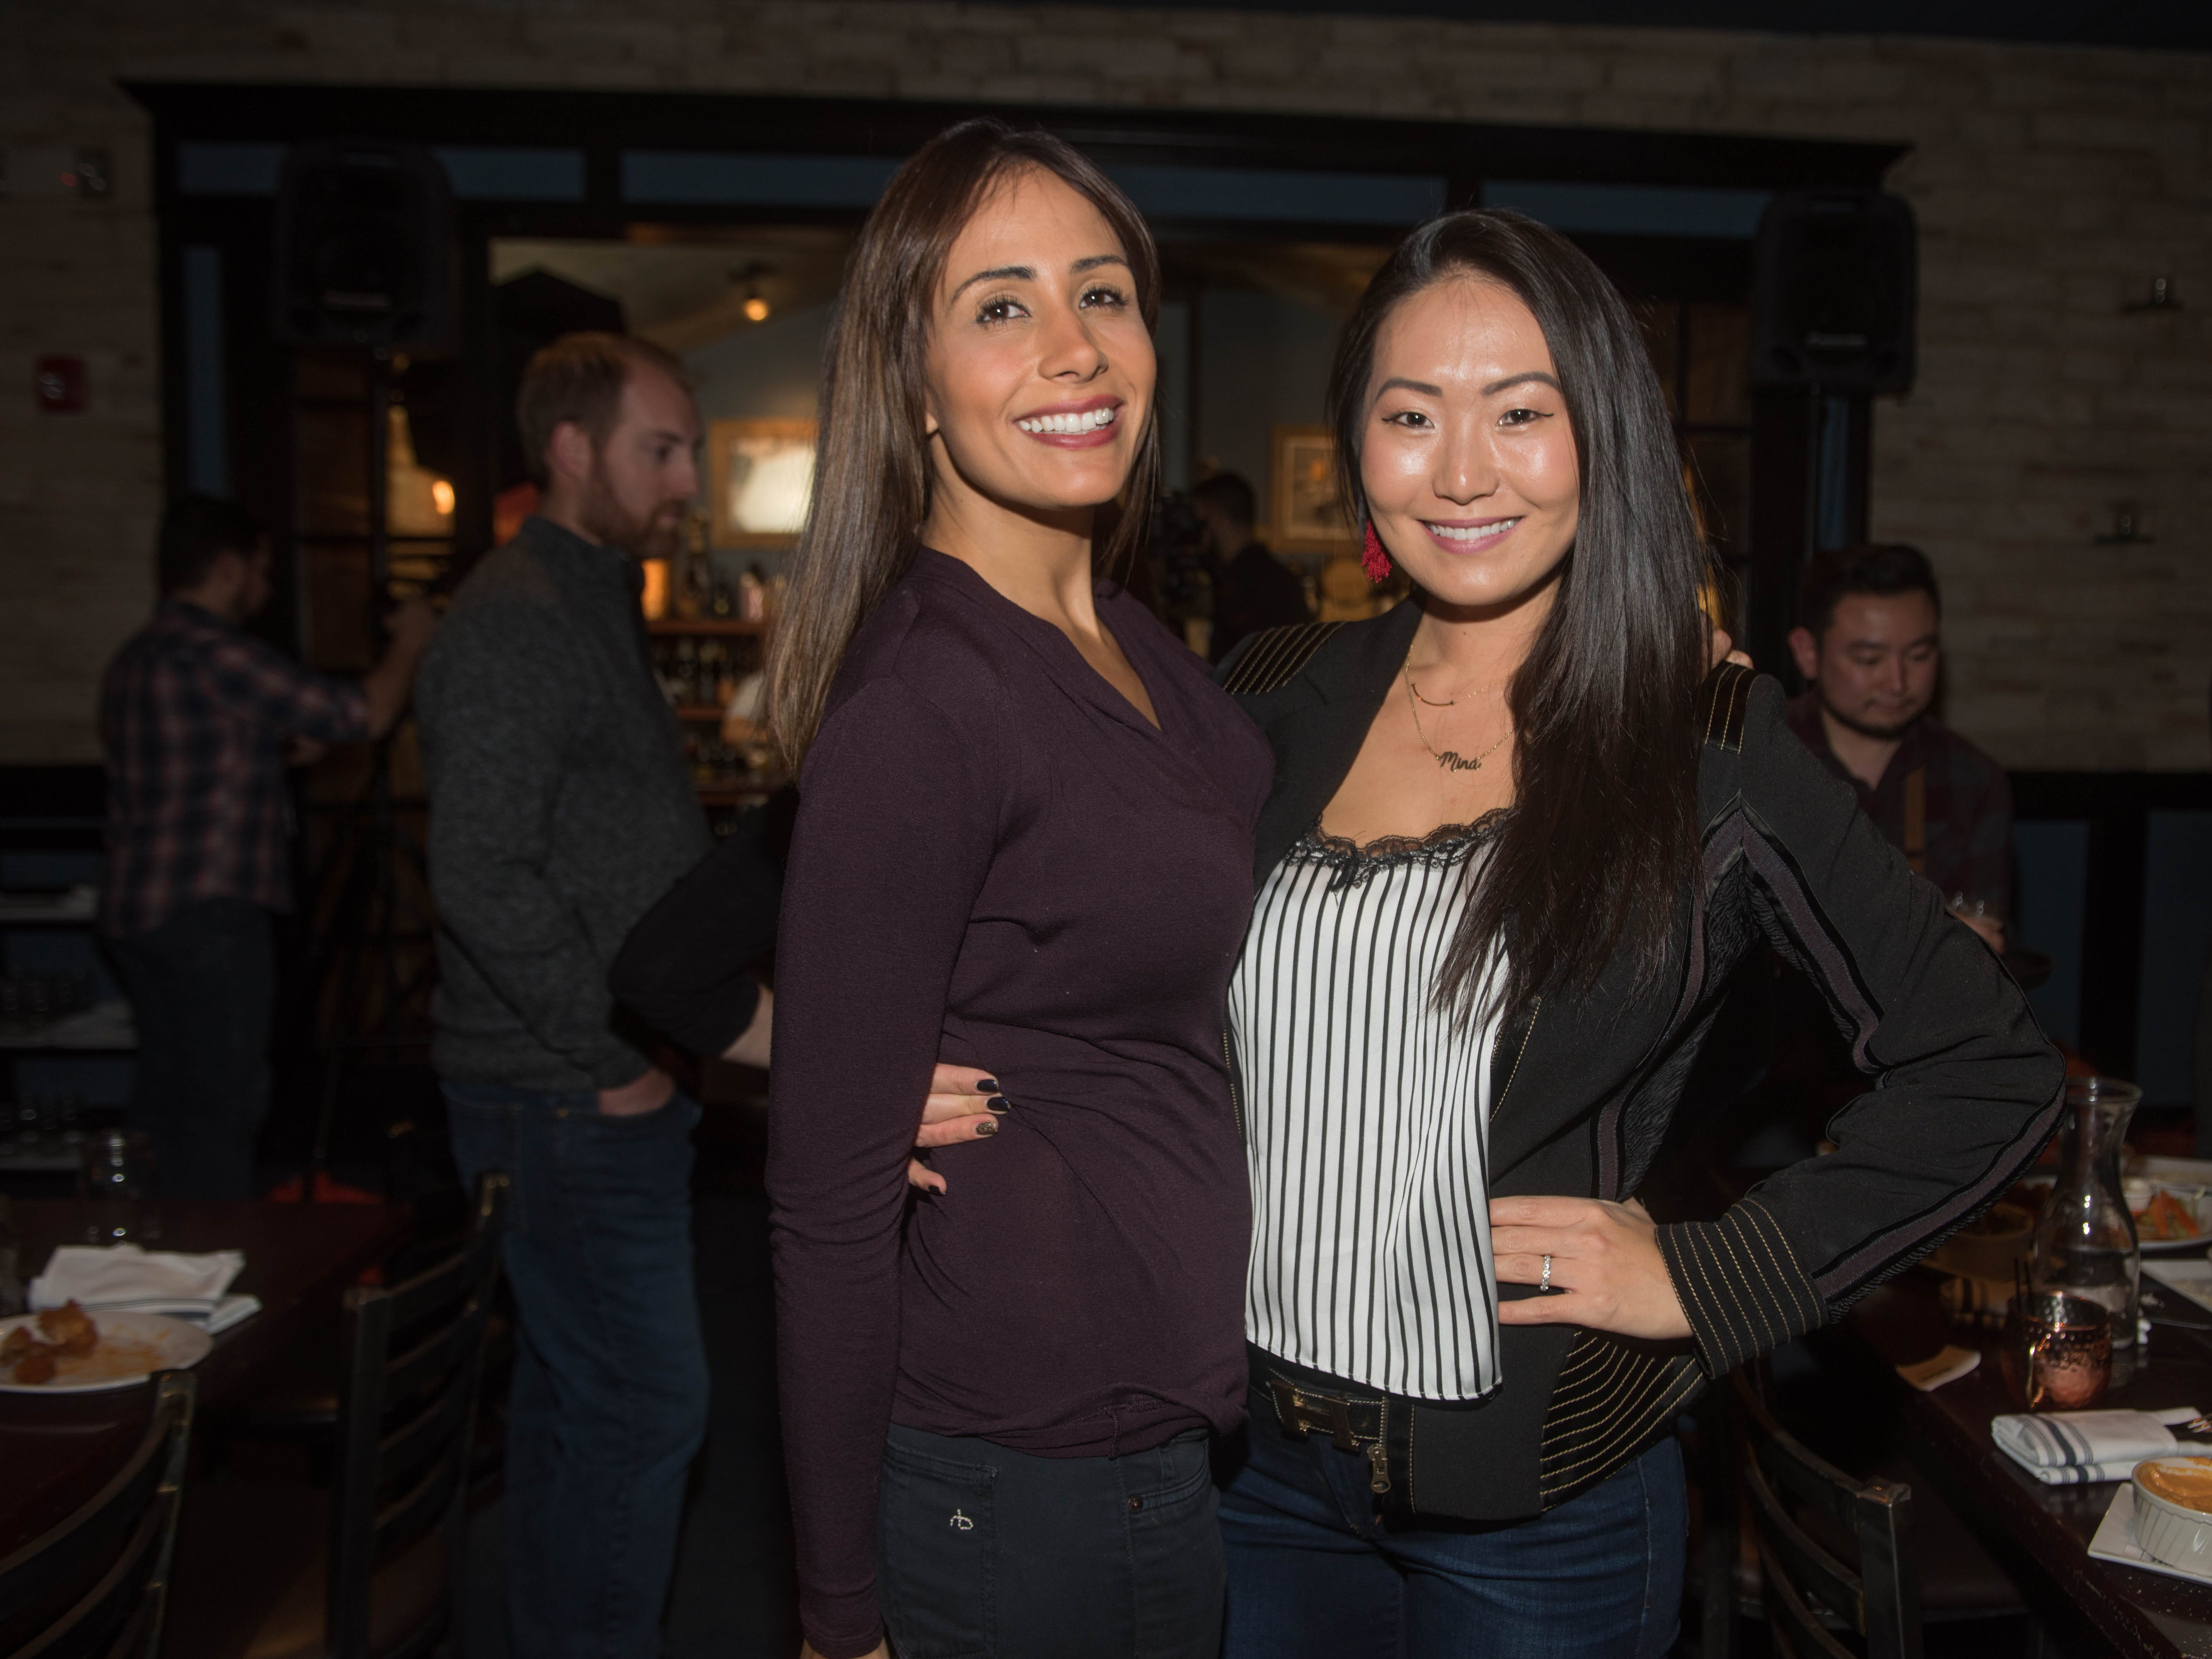 Cate Holahan and Mina Barany. (201) Magazine and NorthJersey.com held Taste Test Tuesday at he Dog and Cask in Rochelle Park with this month's cover model, Lauran Tuck and former cover model and former NY Giant Justin Tuck. 11/13/2018